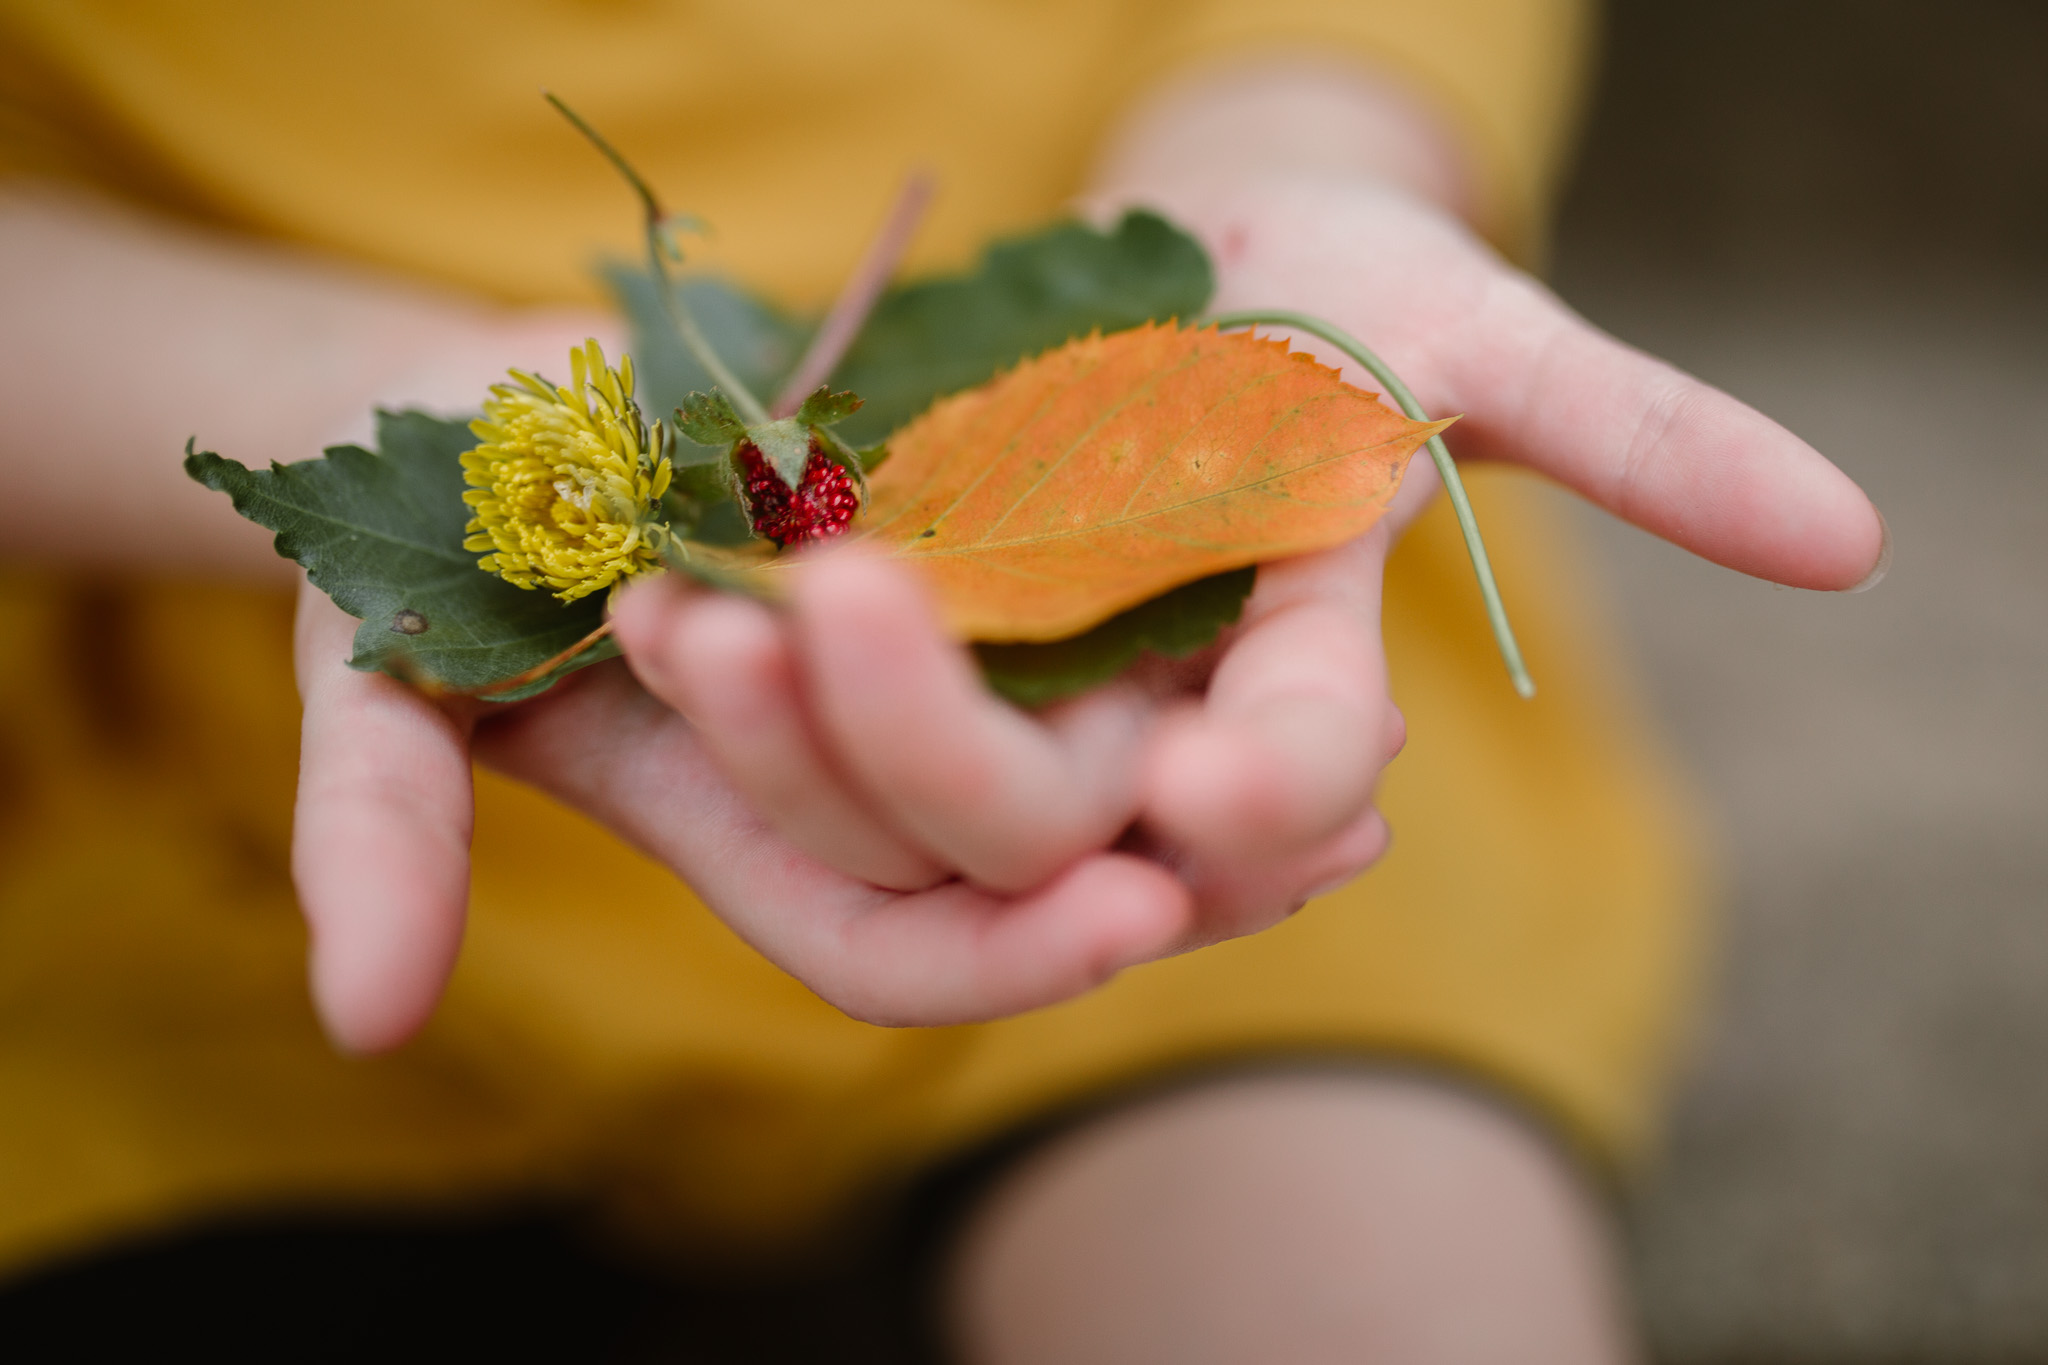 toddler in a yellow shirt holding a pile of colored leaves, flowers, and berries in her hands